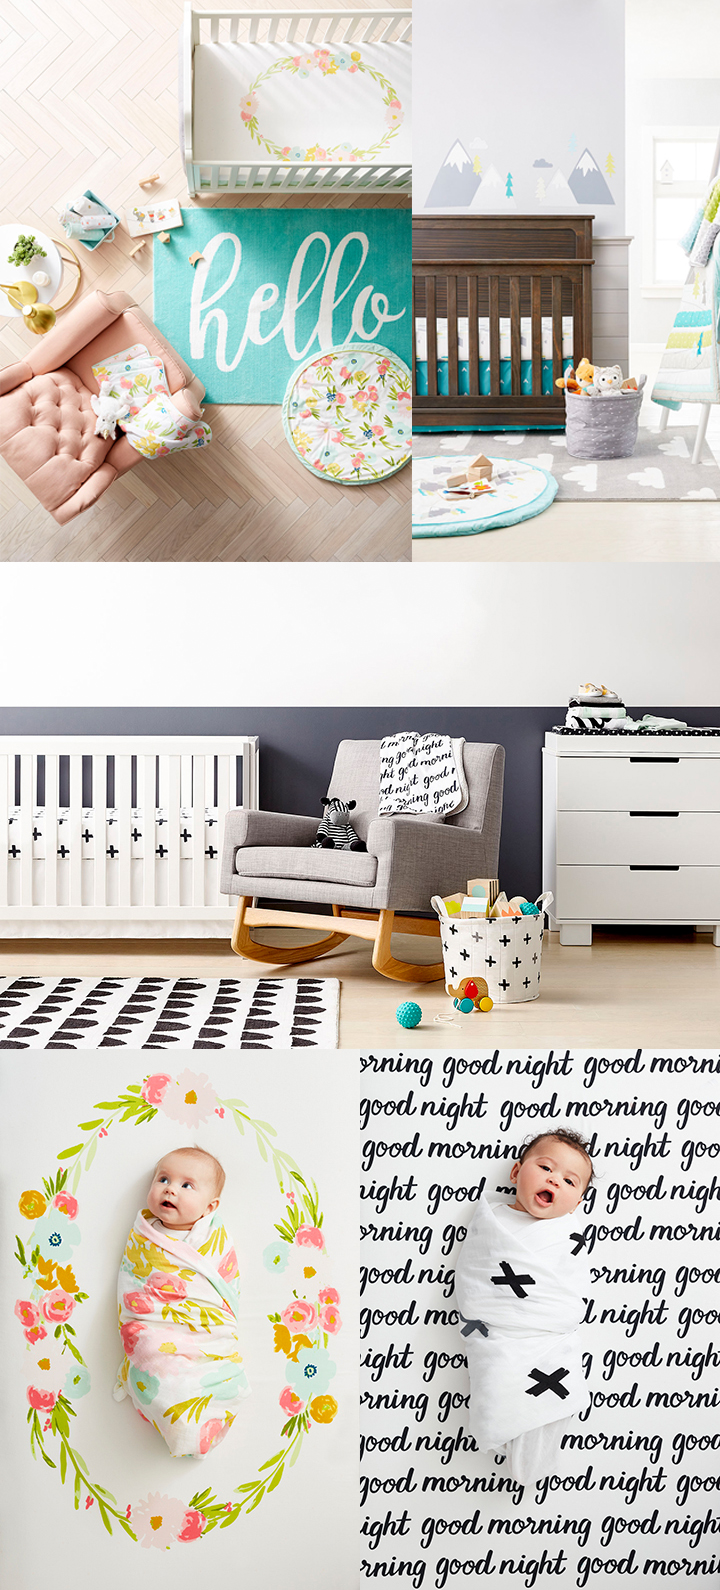 So Fresh & So Chic Friday Finds Vol. 21: Introducing Cloud Island, the new baby line from Target!